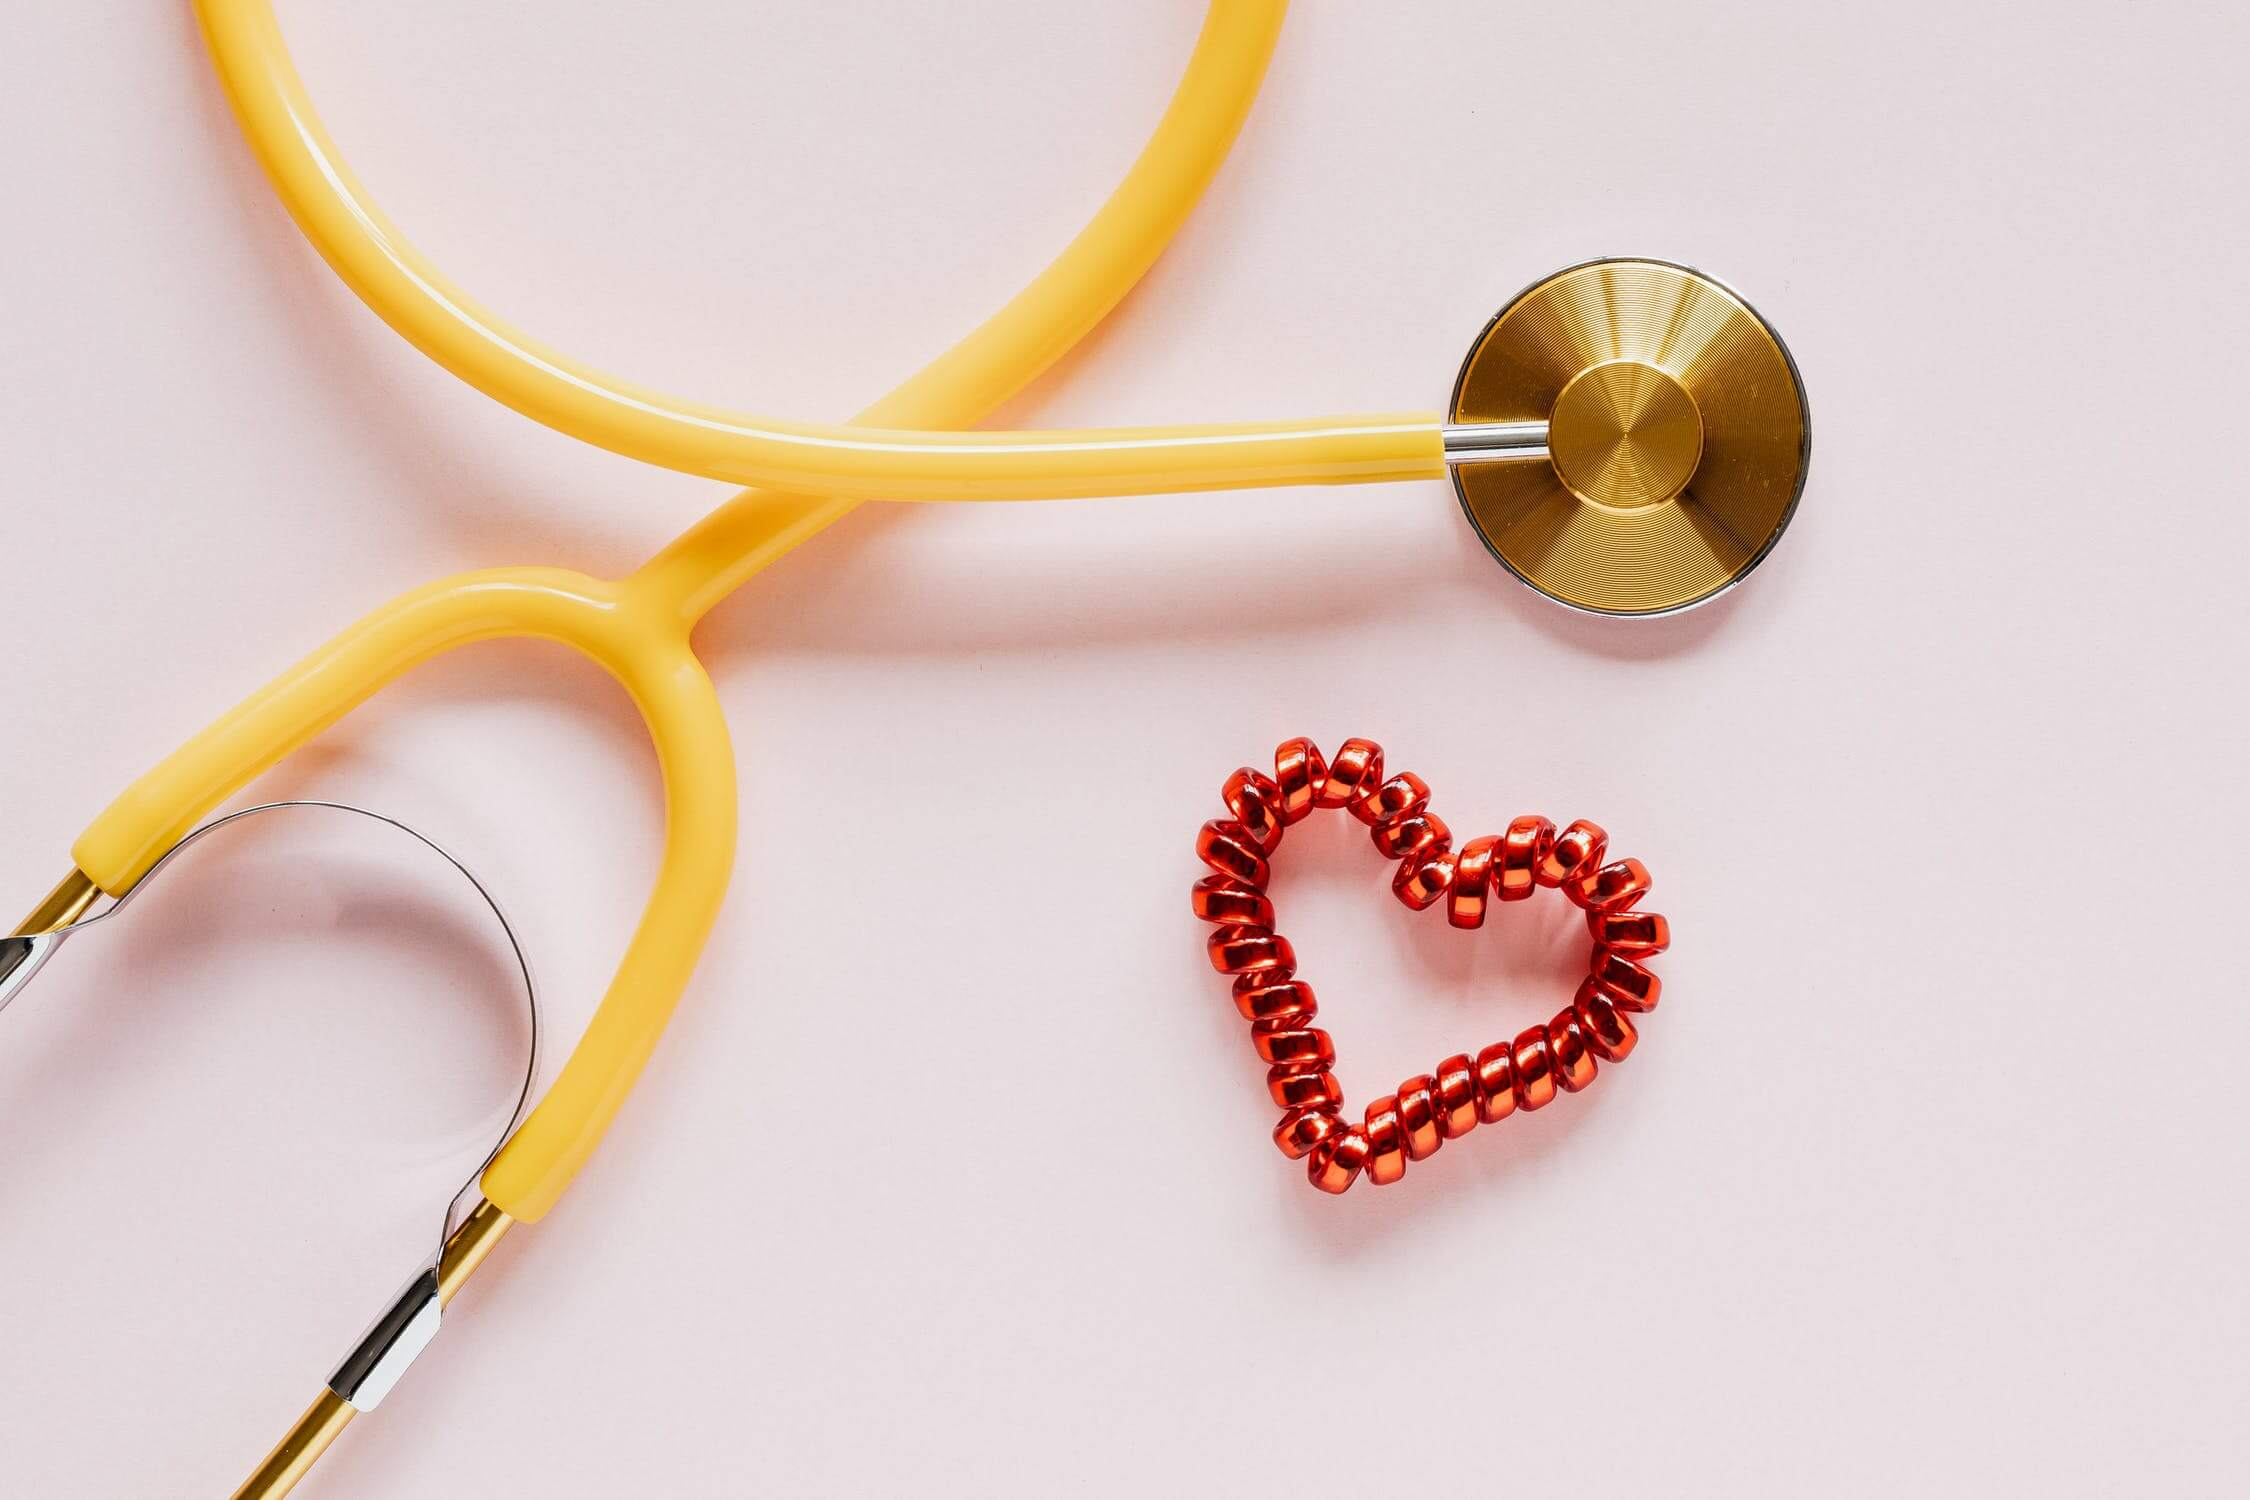 A stethoscope used to listen to patients hearts